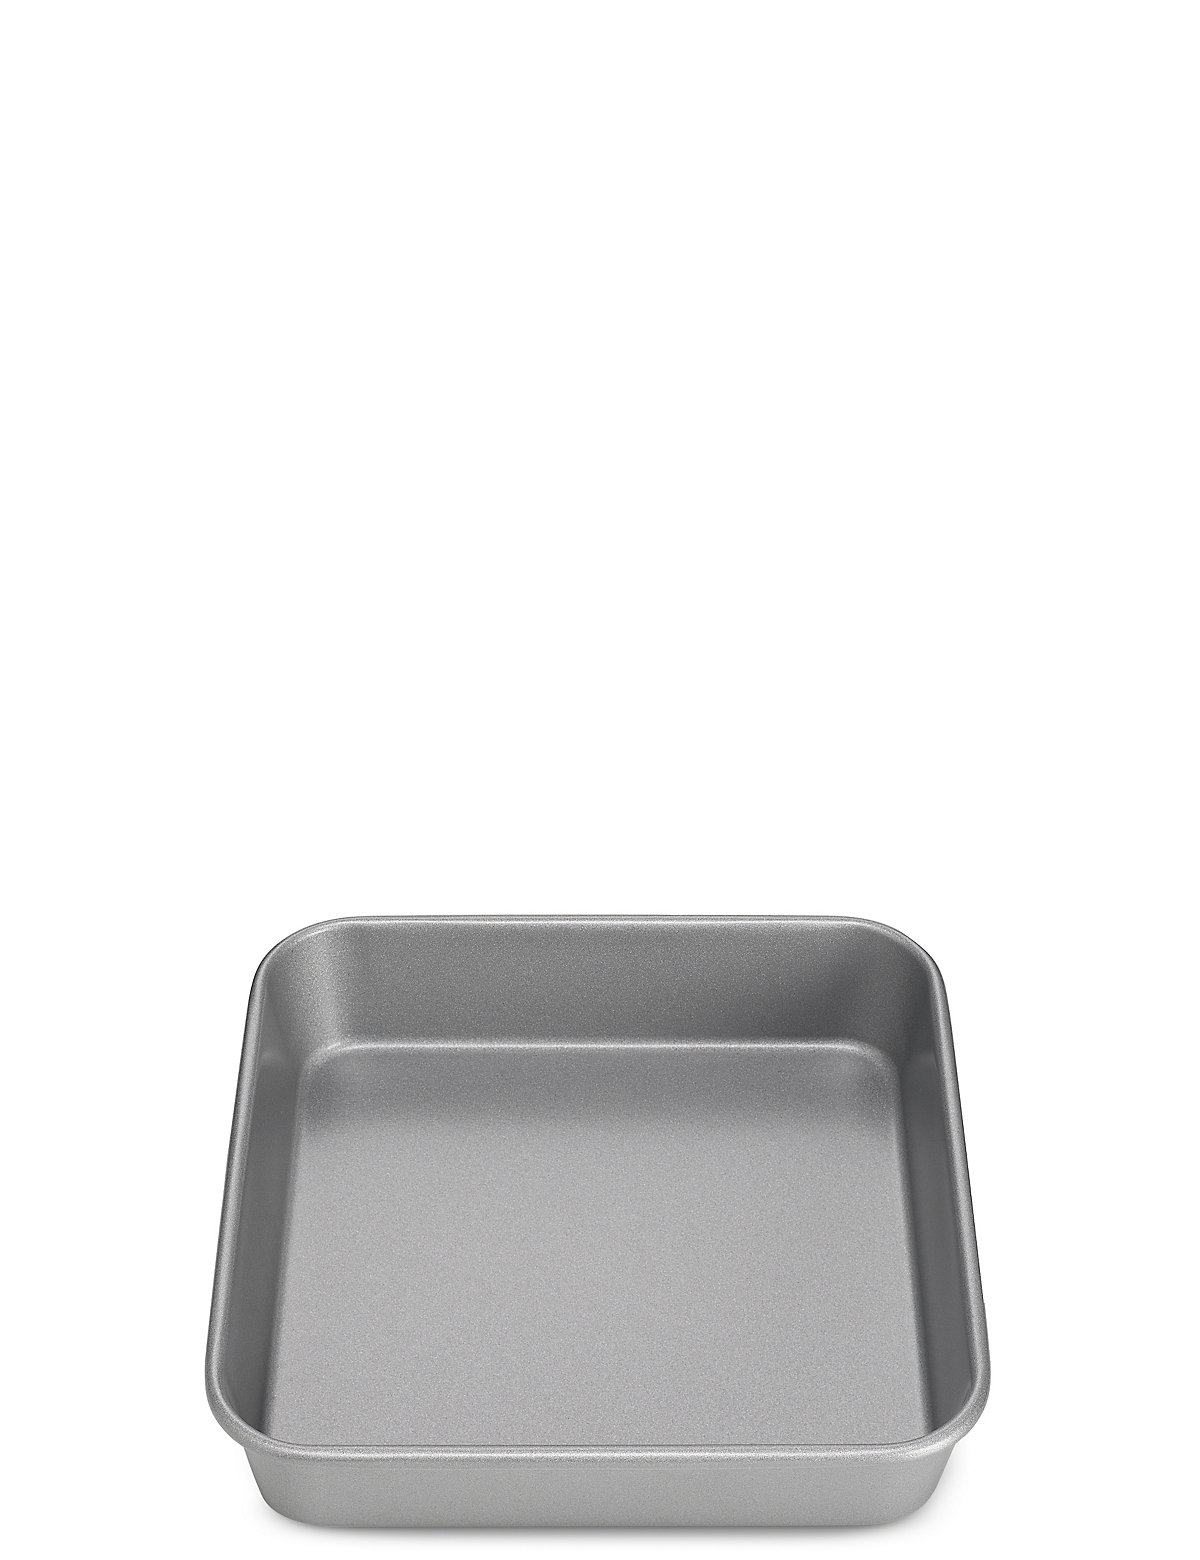 Image of 23cm Non-Stick Baking Tray